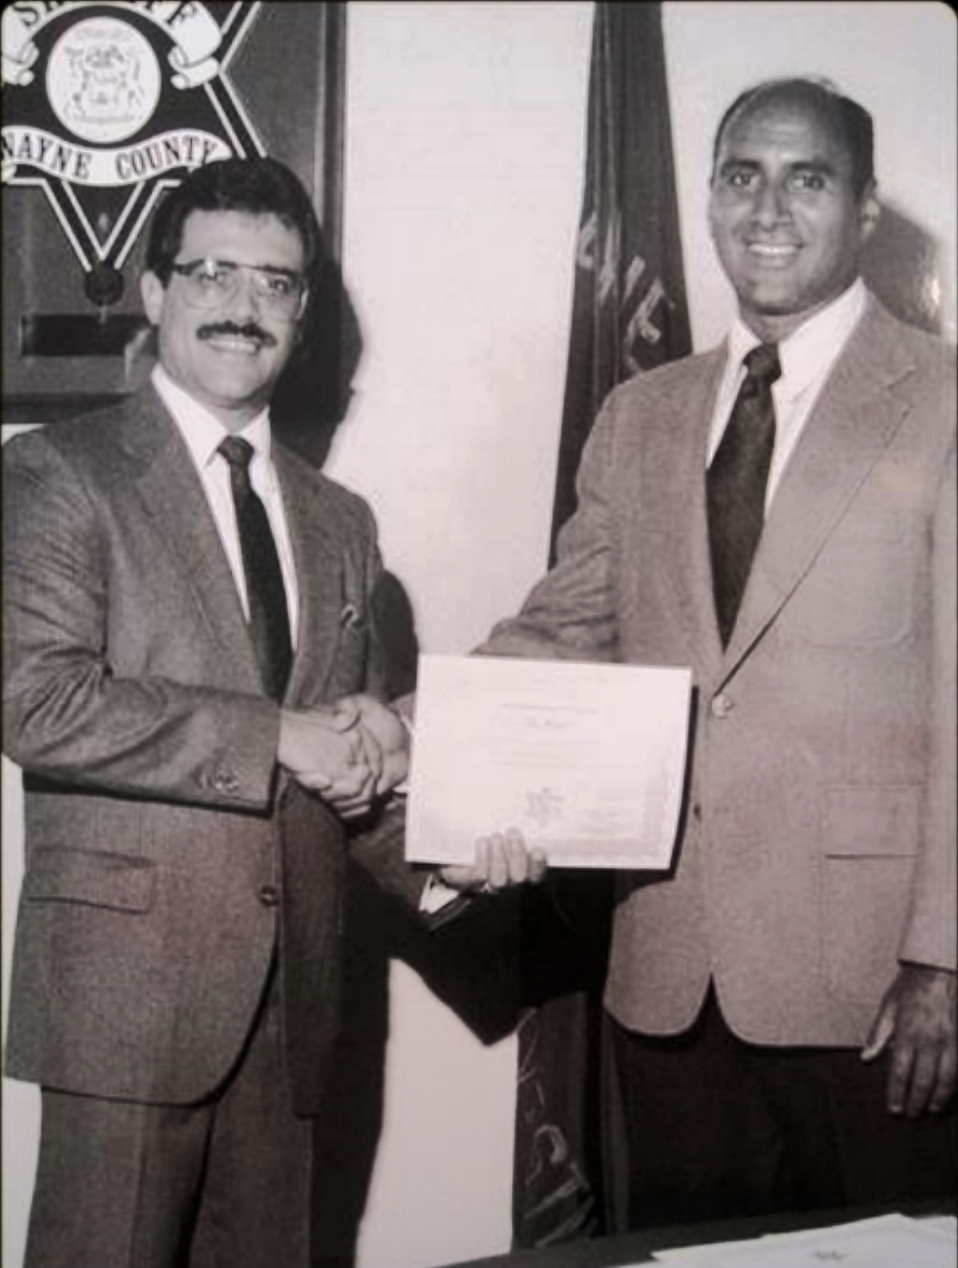 November 9, 1984. Sheriff Robert Ficano and me when I retired